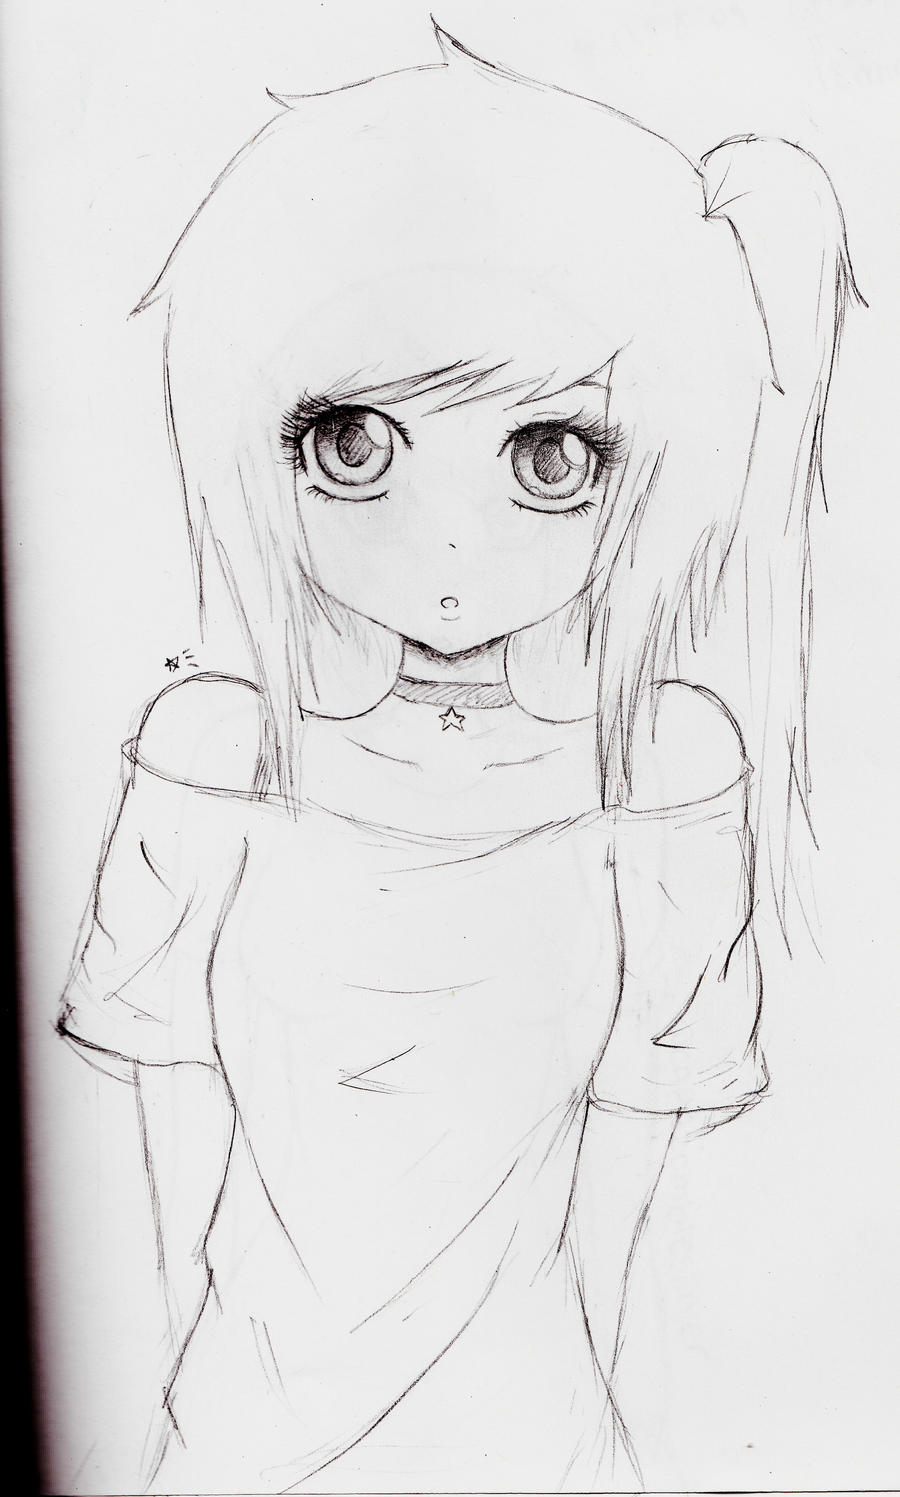 Kawaii girl by escapethestars on deviantart for How to draw a cute girl easy